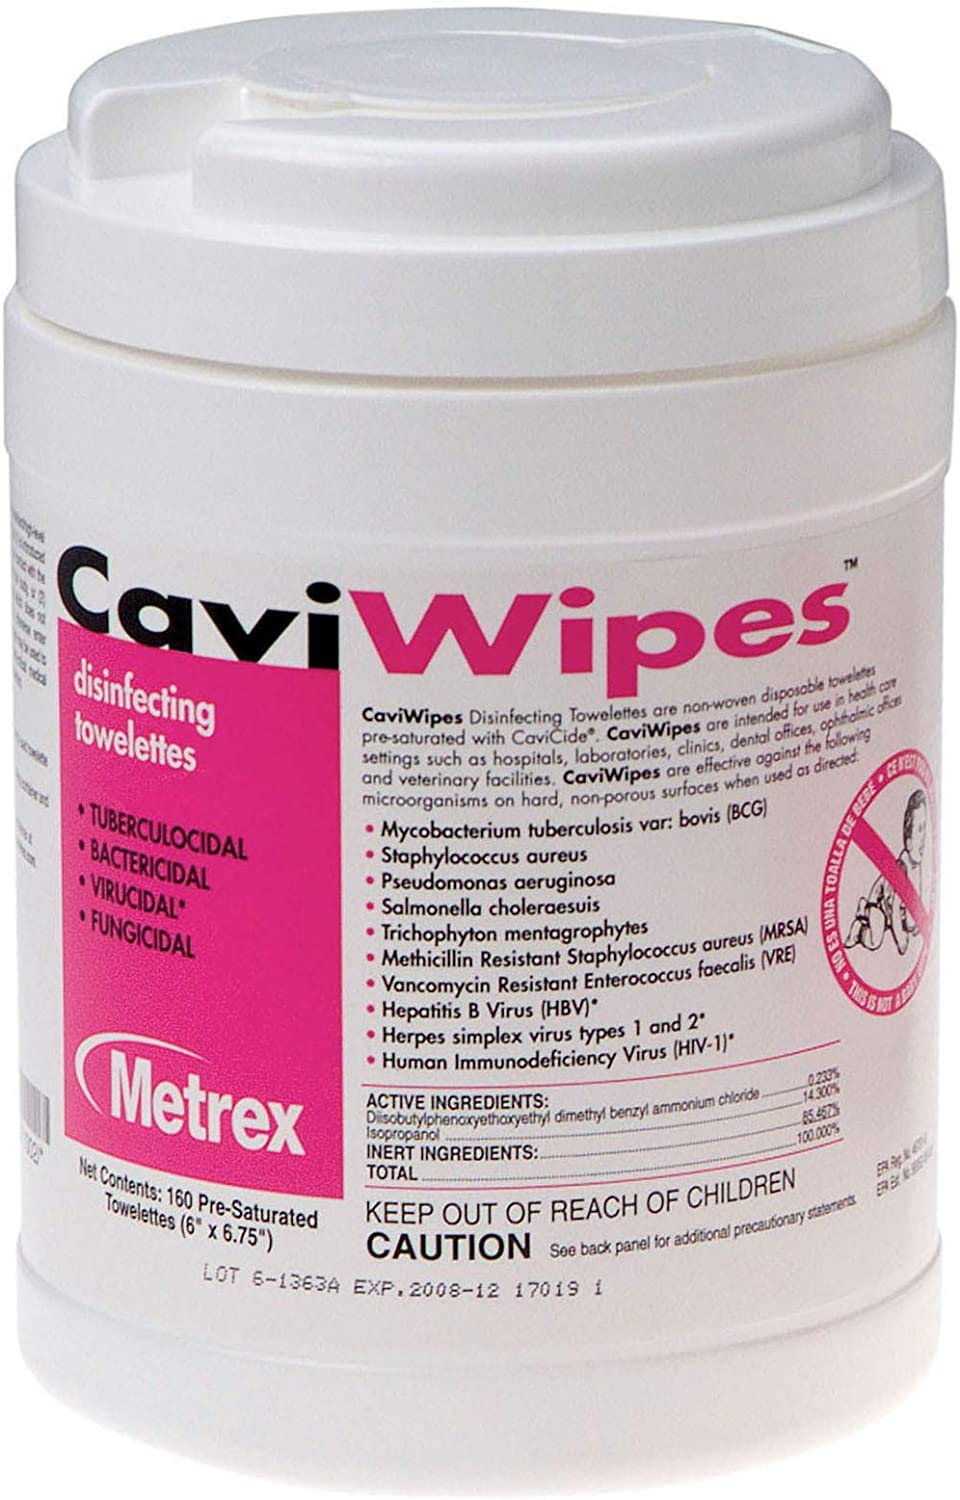 CaviWipes Metrex Disinfecting Towelettes Canister Wipes, 160 Count: Health & Personal Care